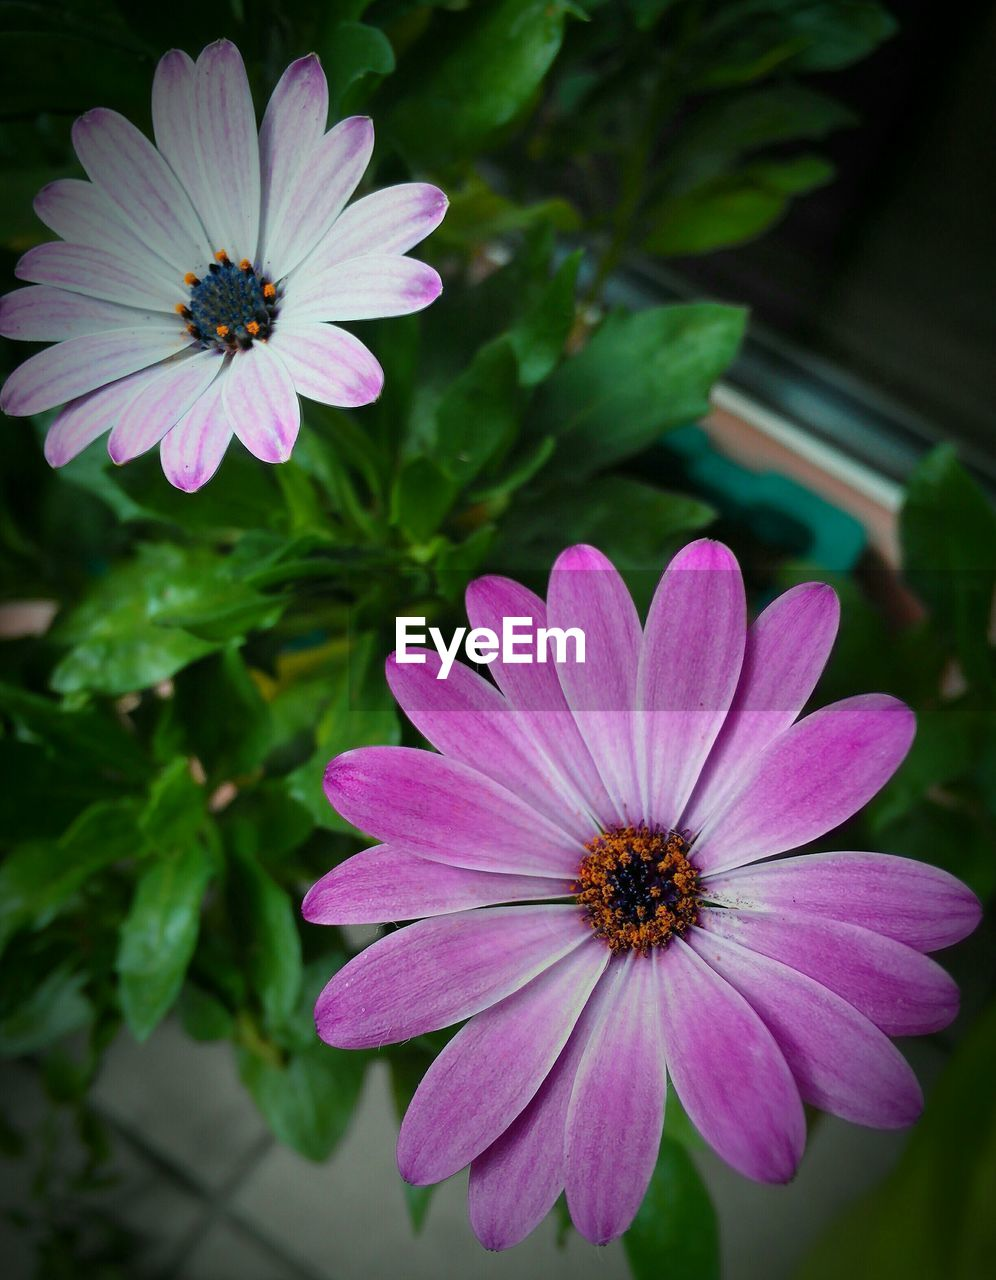 flower, petal, flower head, nature, fragility, beauty in nature, plant, growth, freshness, blooming, osteospermum, purple, pink color, pollen, no people, day, outdoors, close-up, cosmos flower, zinnia